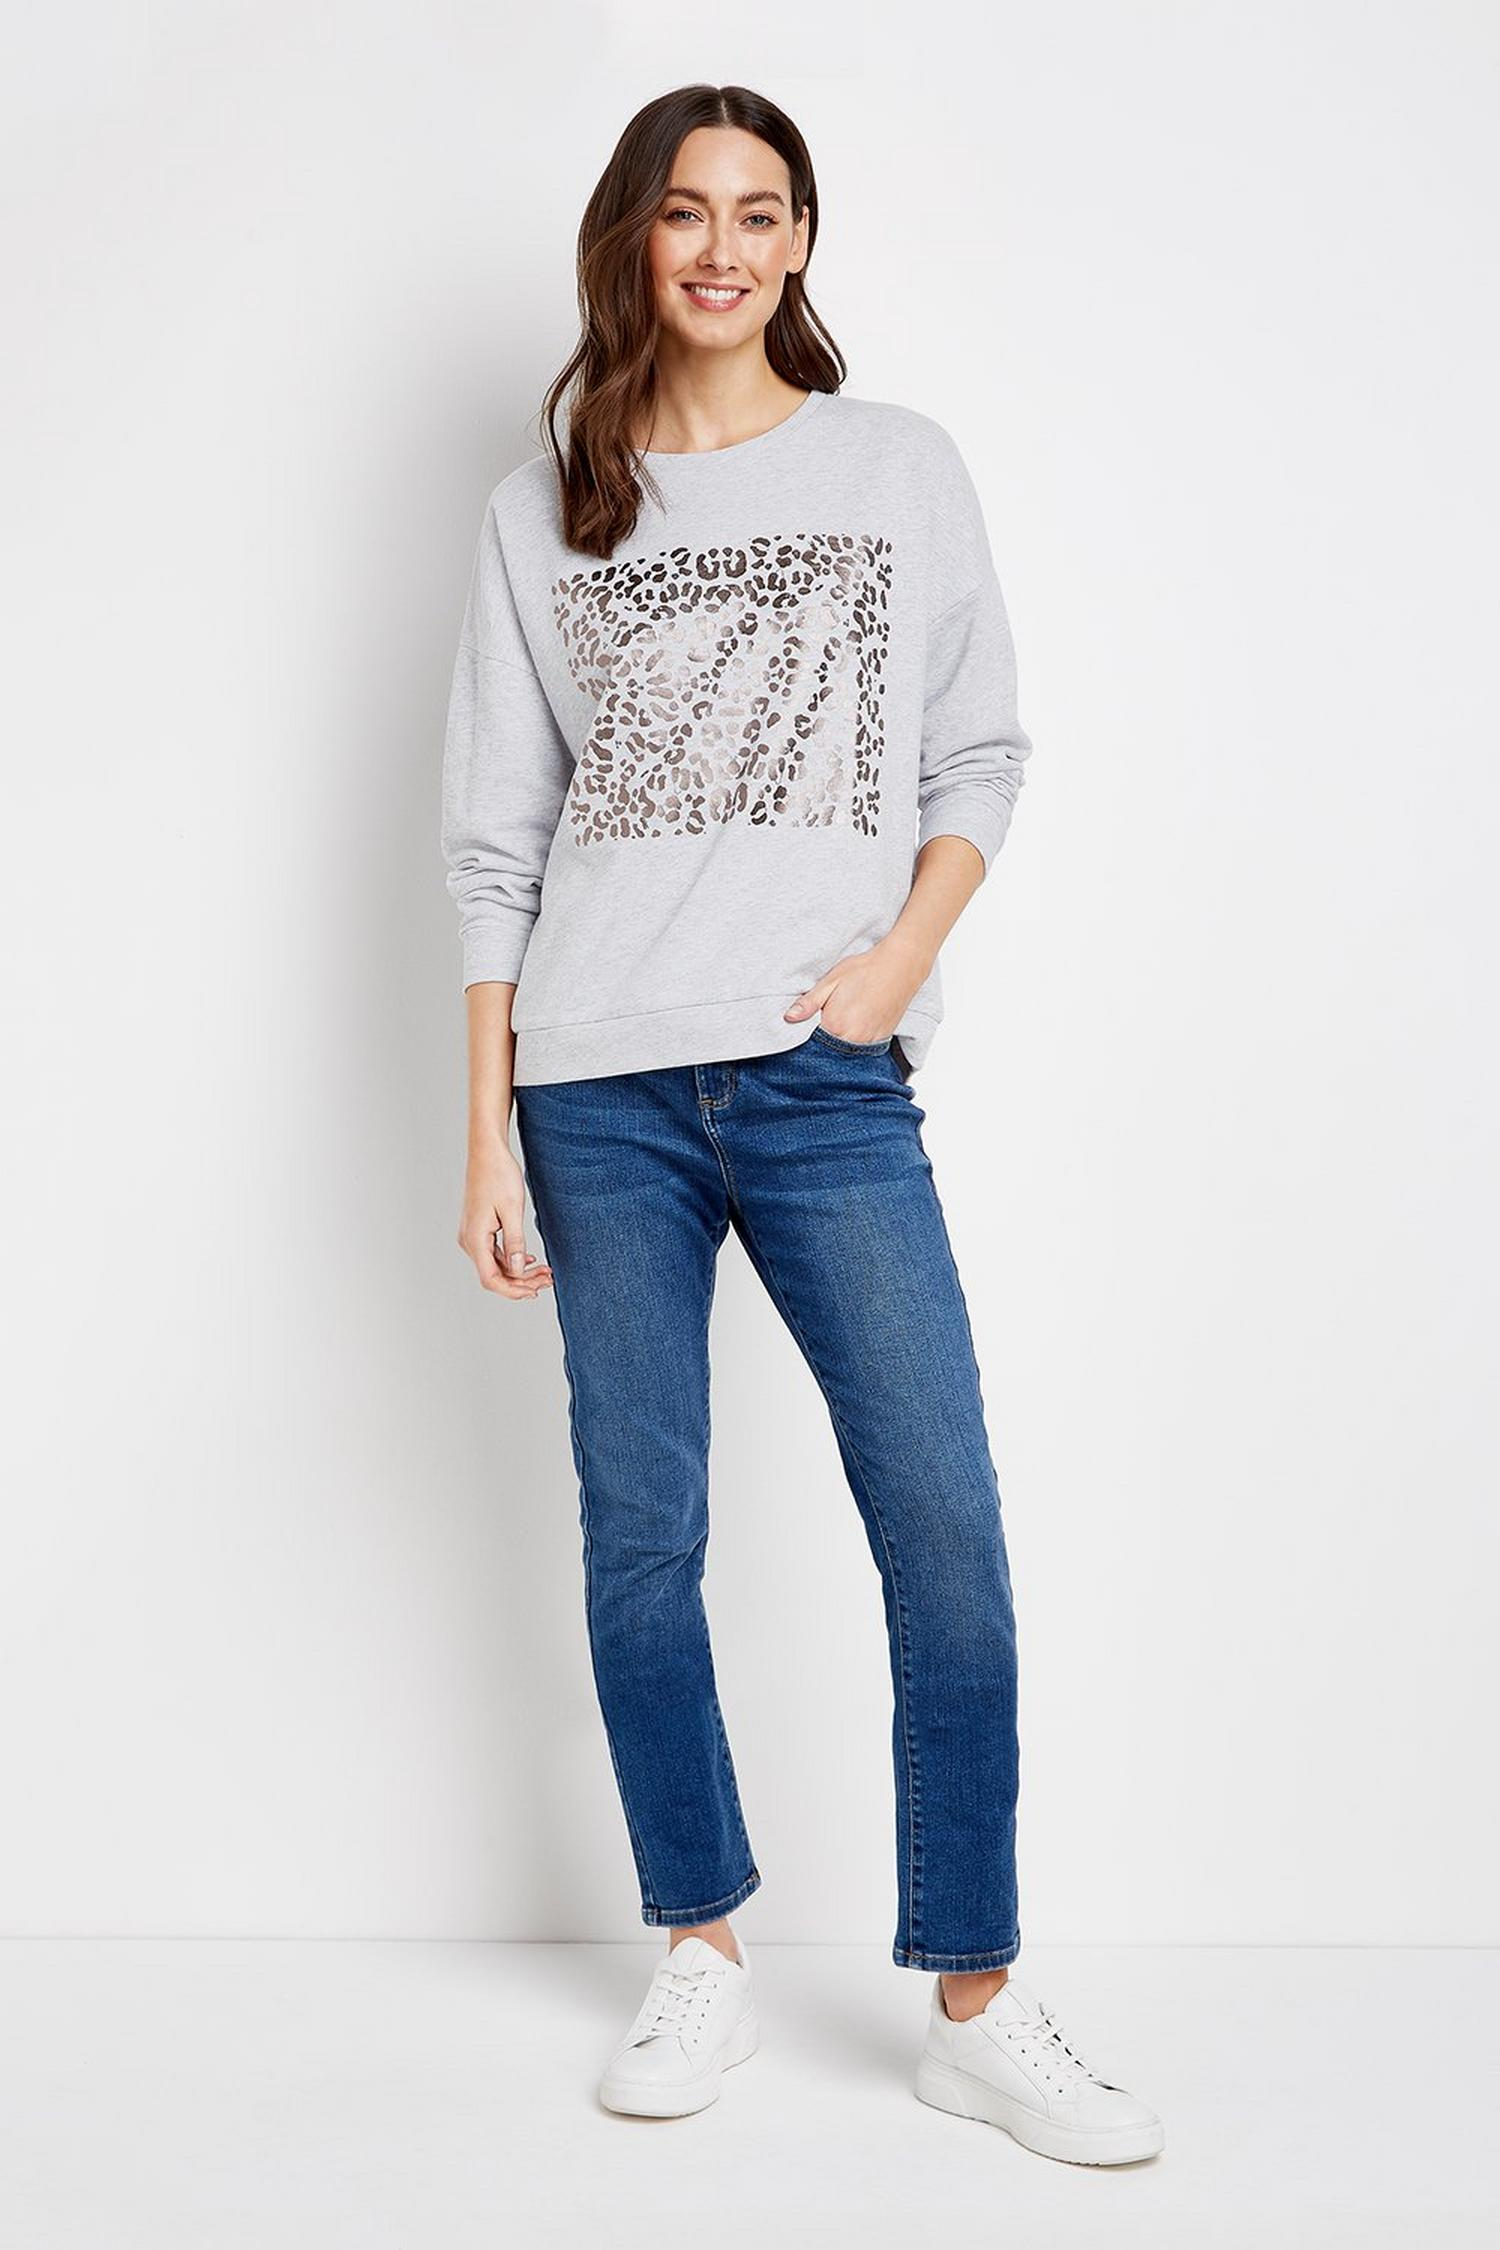 131 Grey Metallic Animal Print Jumper image number 2